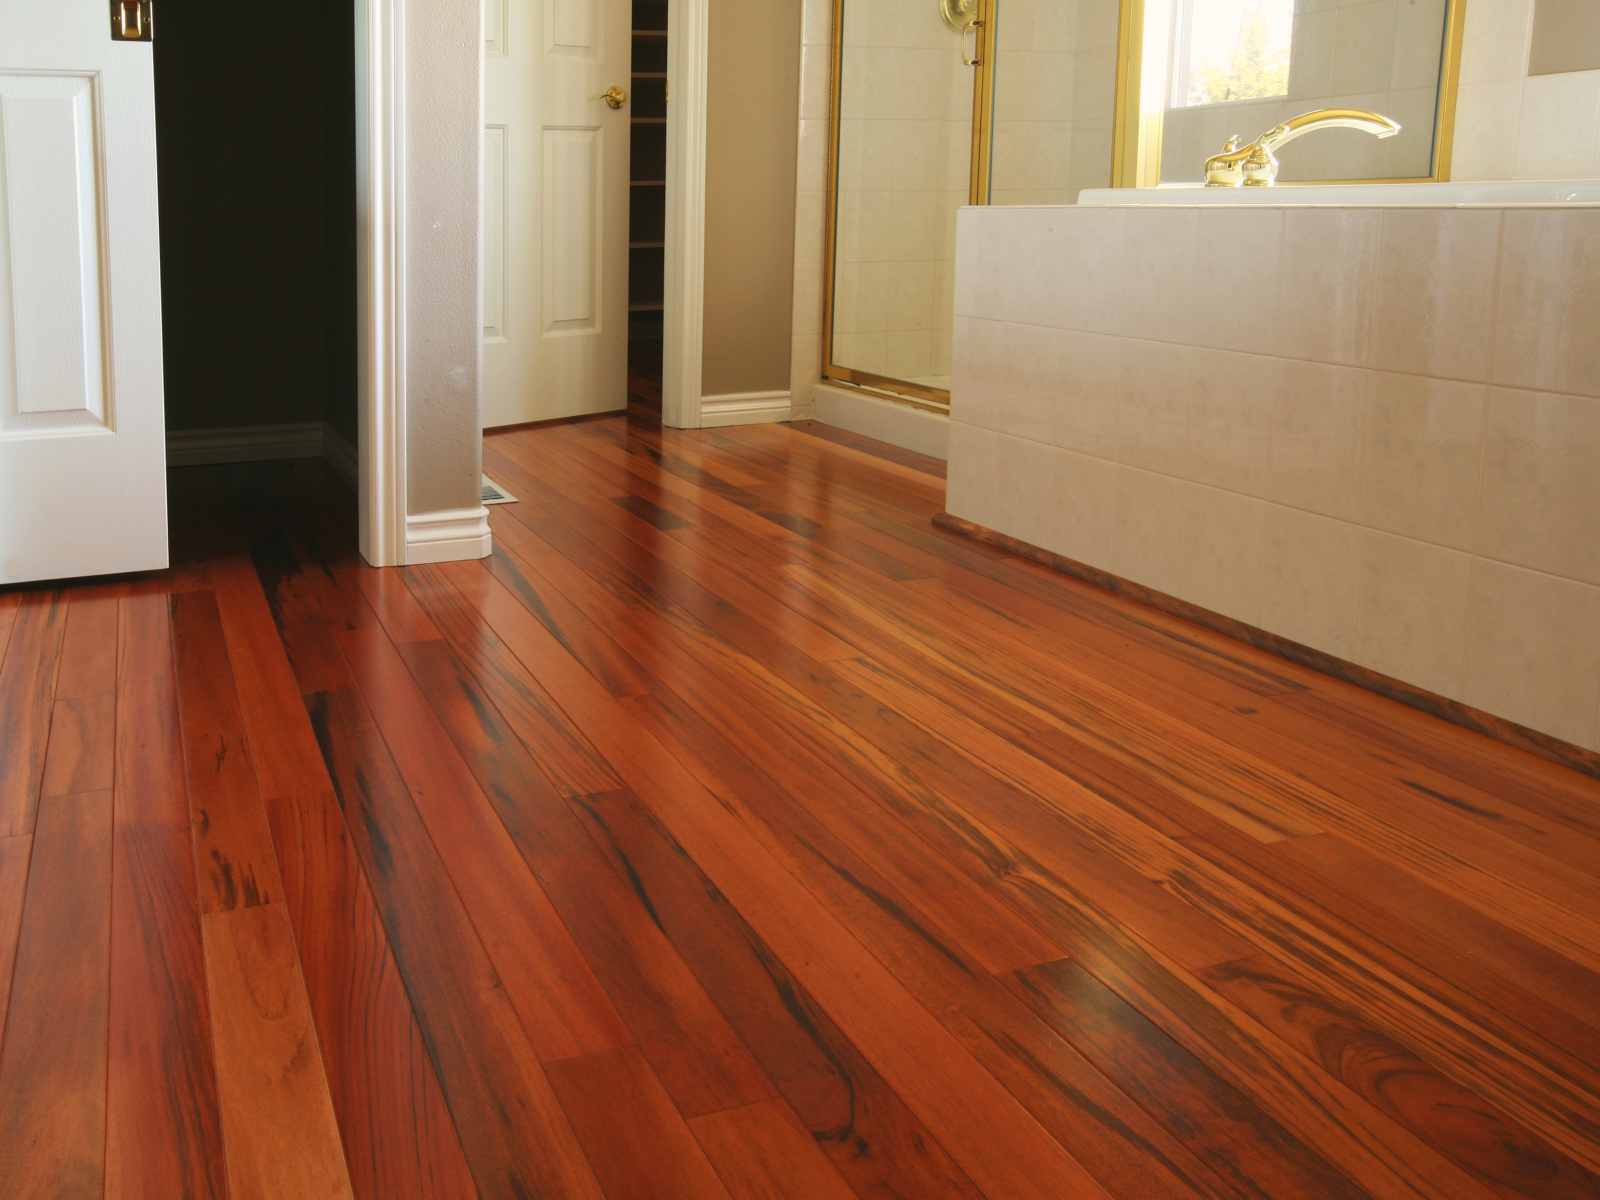 Bamboo Flooring – Eco Friendly Flooring For Your Home